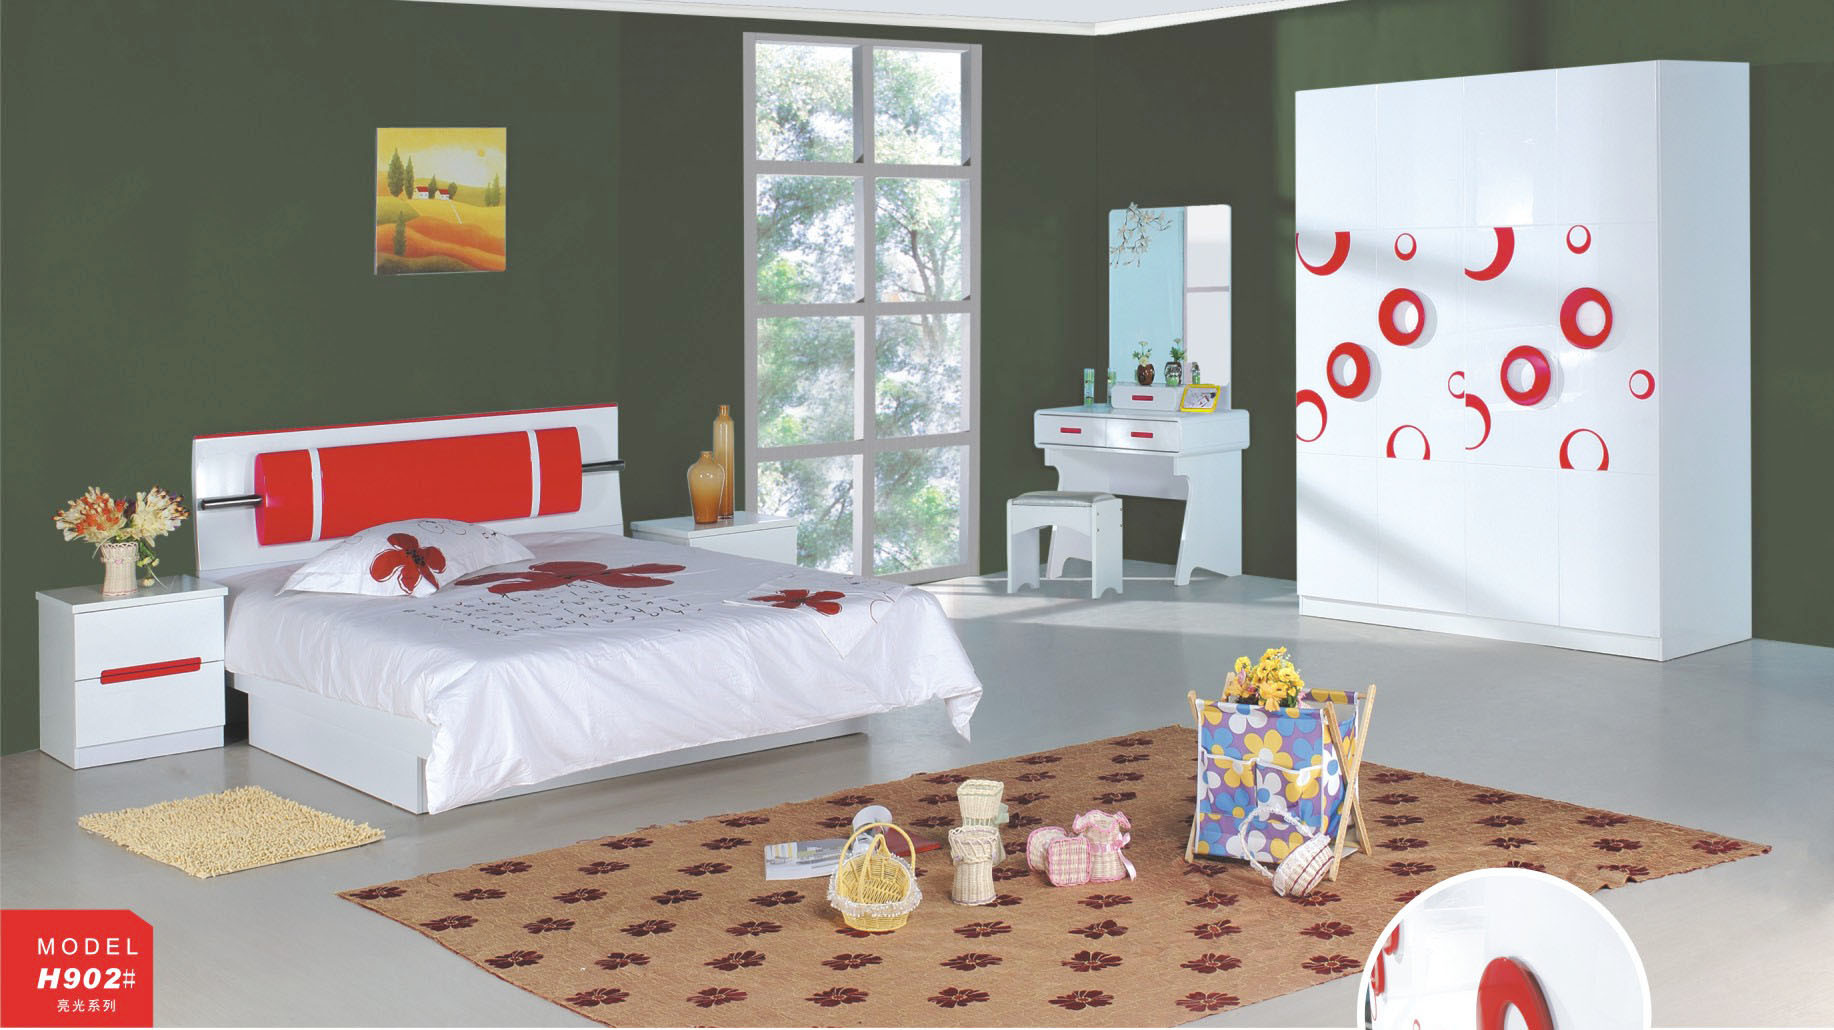 Http Richywang En Made In China Com Product Xqlmdcgthjhf China Children Bedroom Set Jfh 902 Html